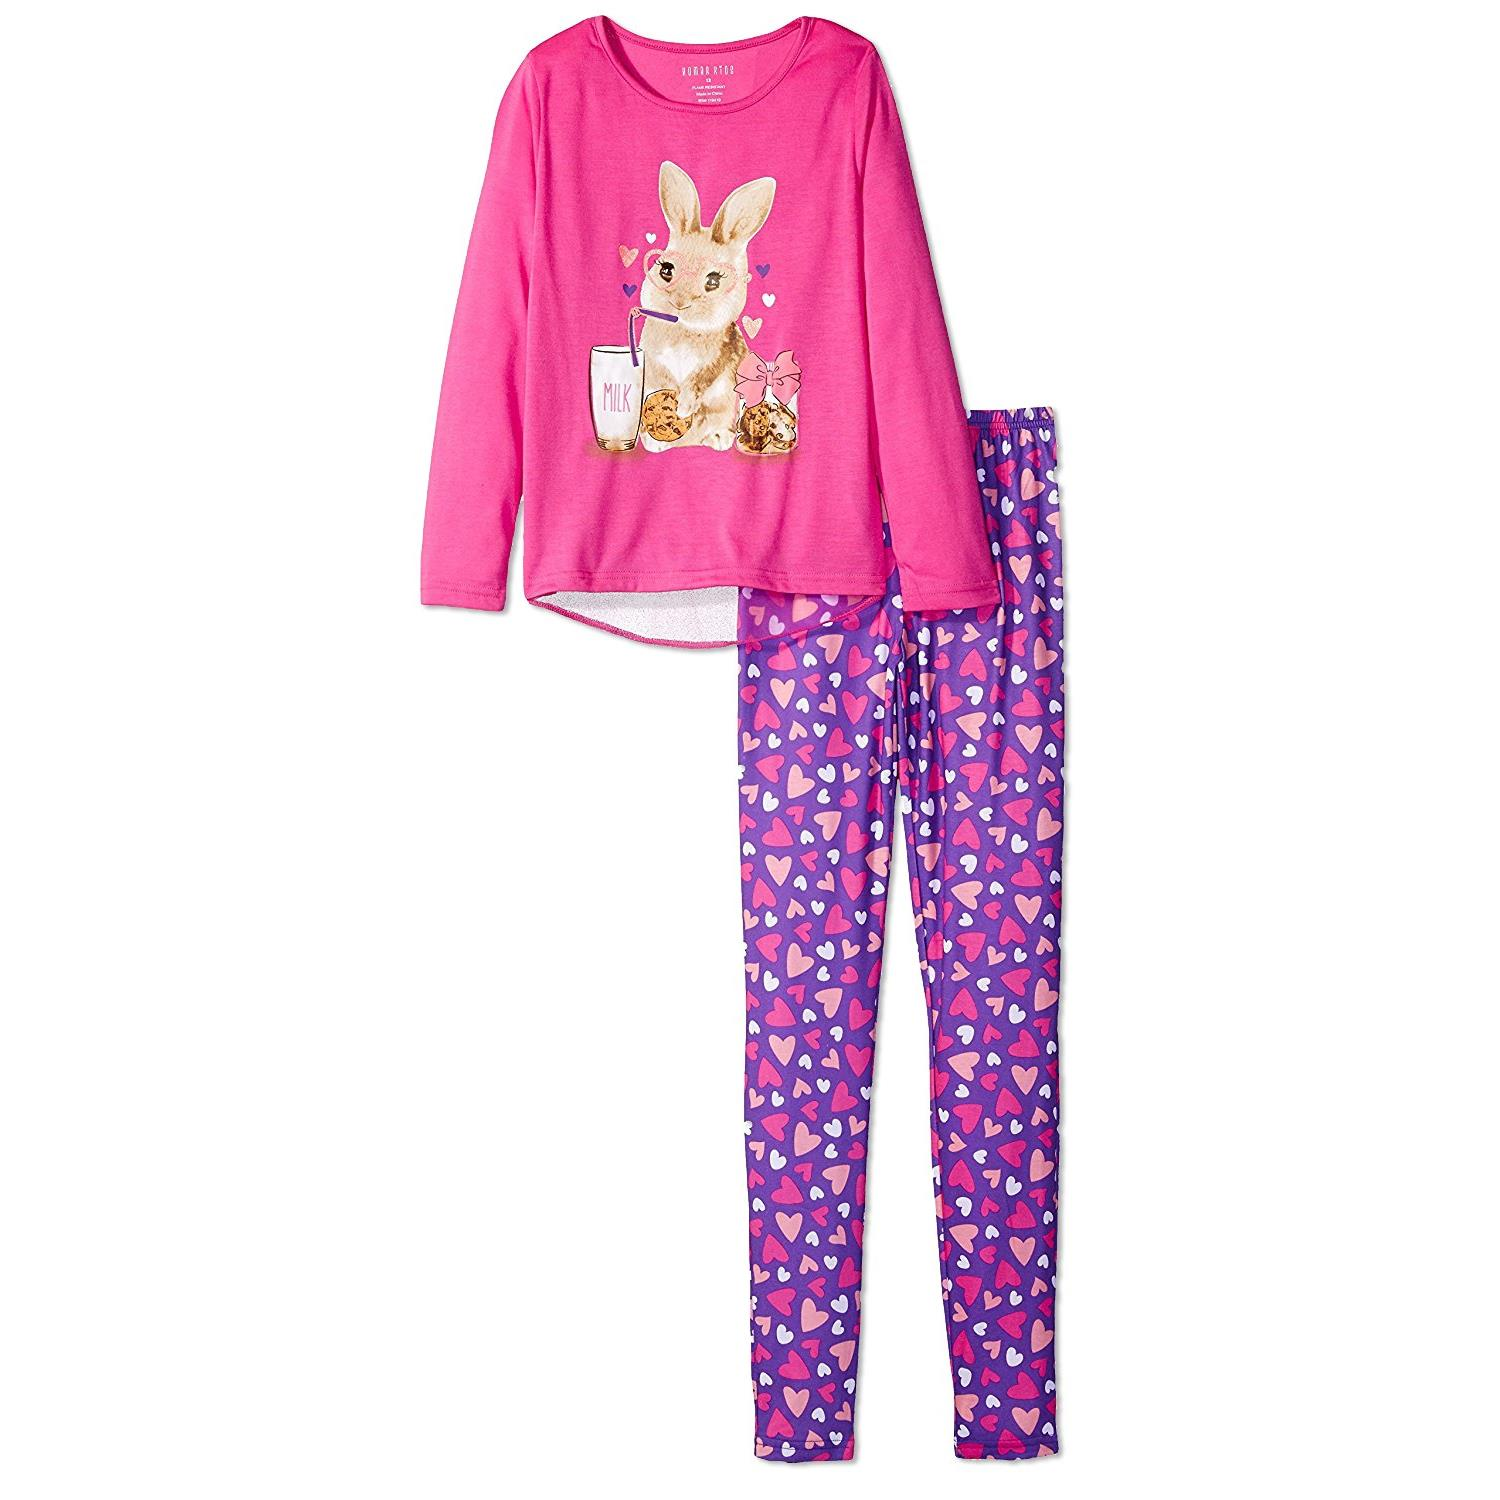 Komar Kids Big Girls' Bunny 2pc Sleepwear Legging Set